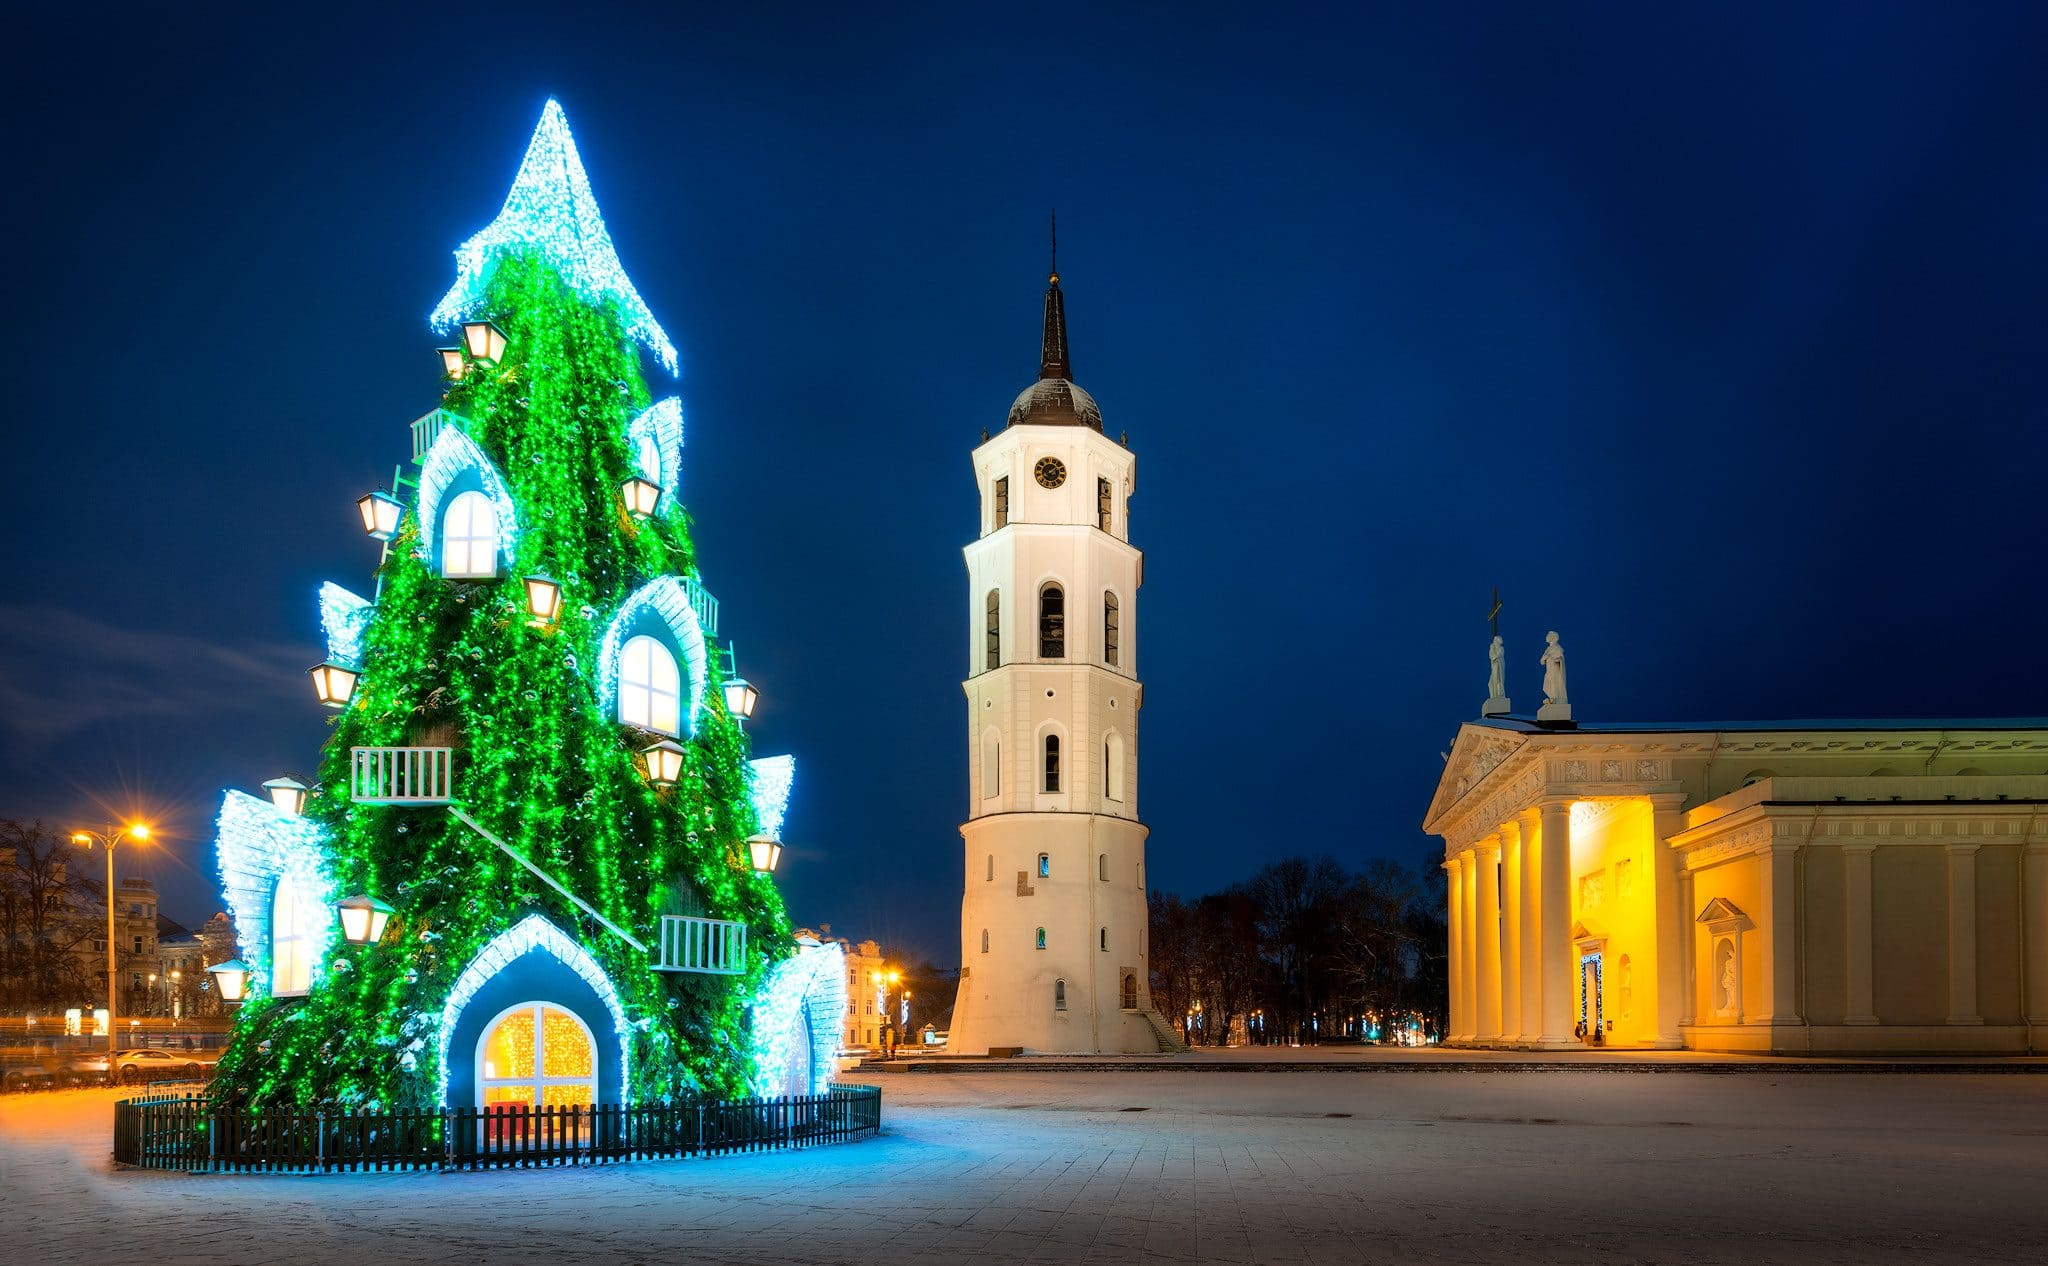 Vilnius in Lithuania with its cathedral square is the perfect location for New Year's Eve.